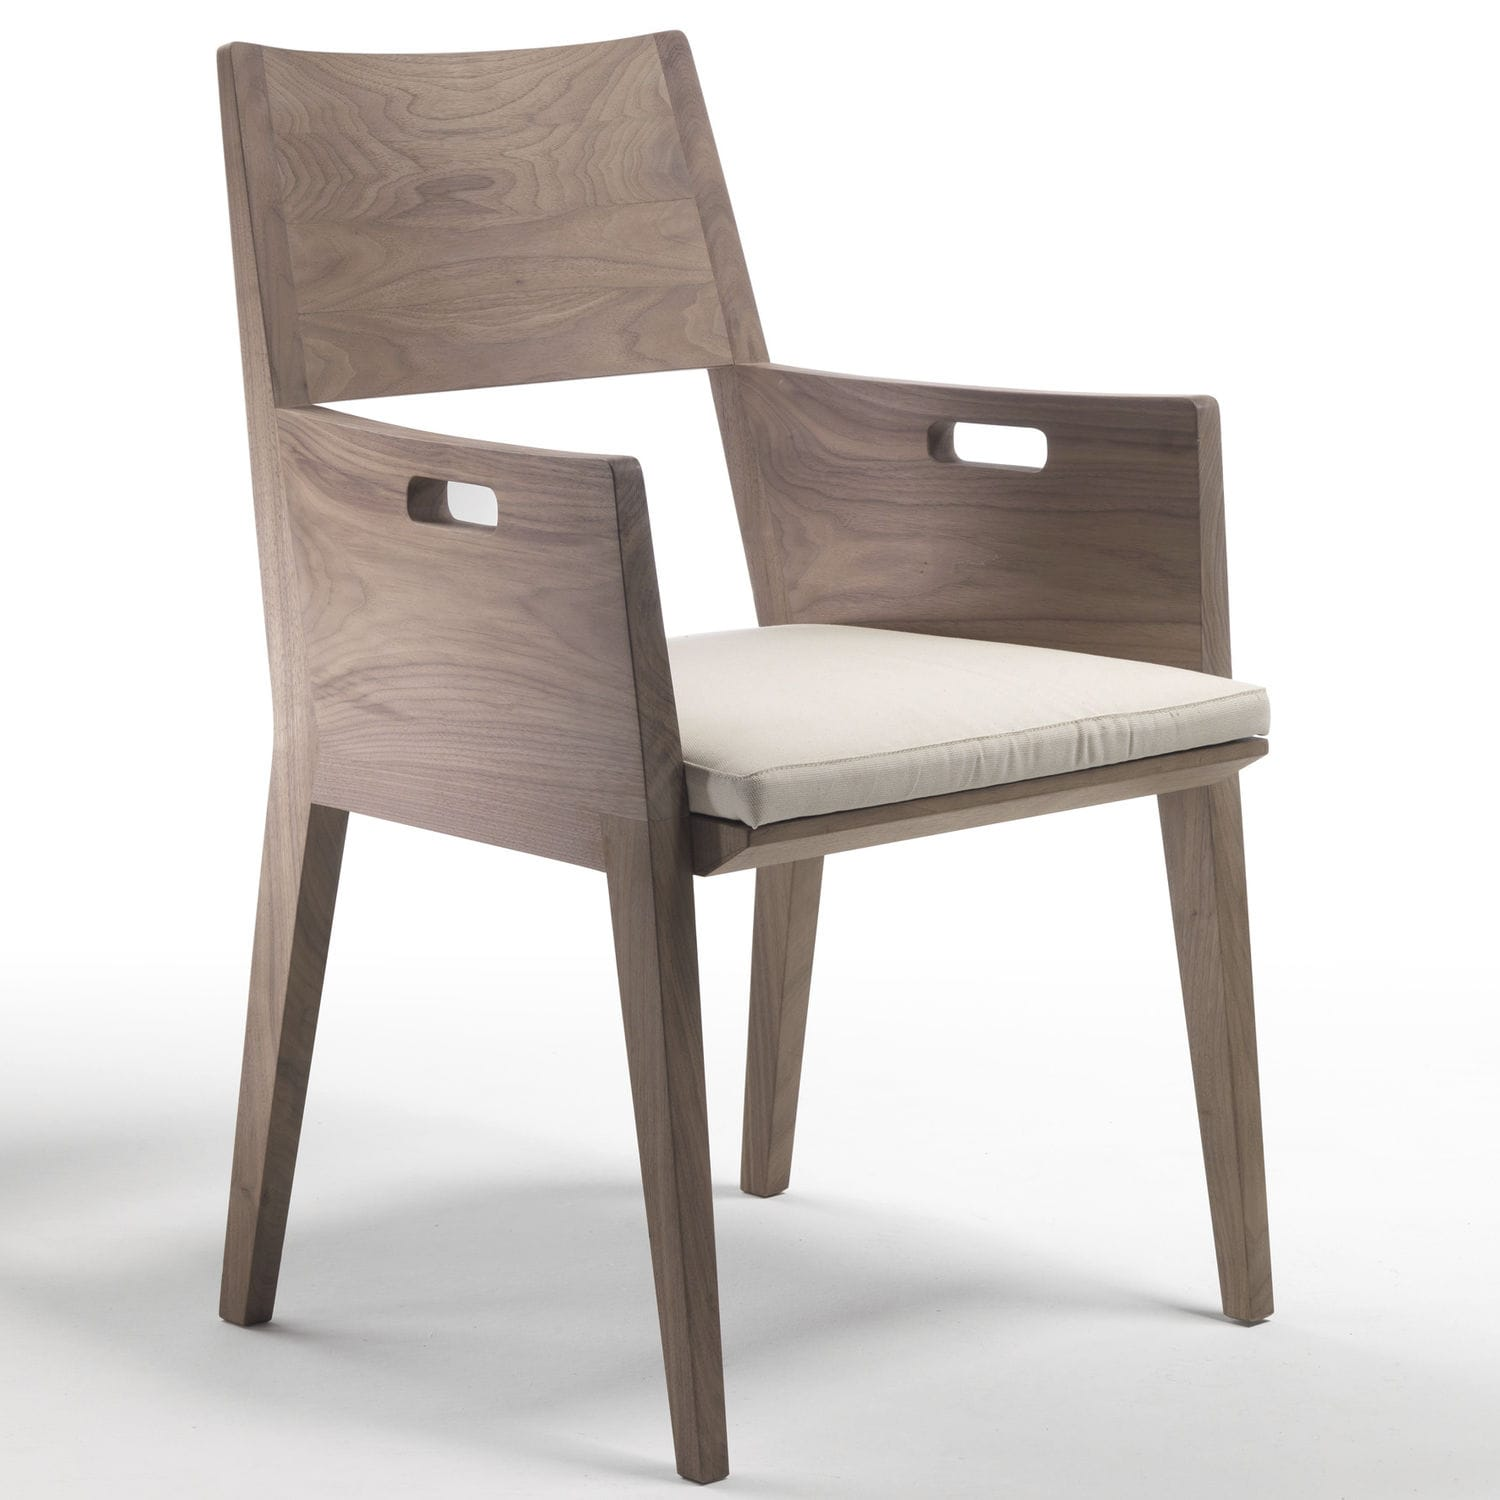 dining chair with armrest folding chairs outdoor heavy duty contemporary armrests upholstered removable cover betty